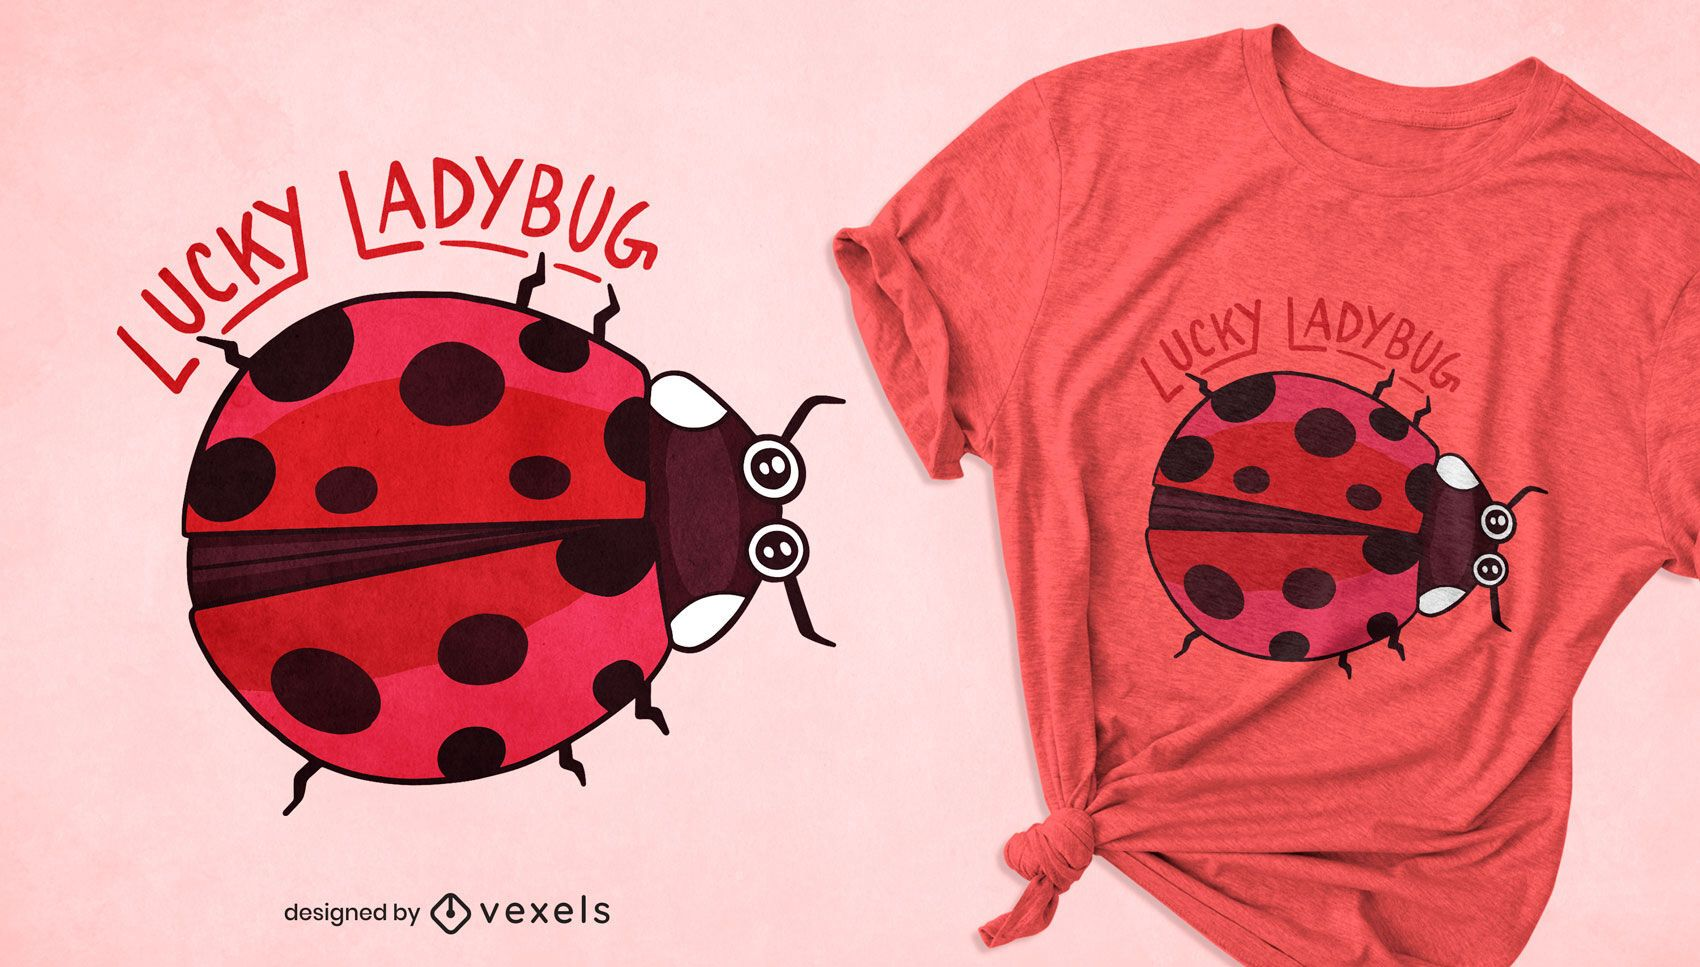 Ladybug lucky insect t-shirt design